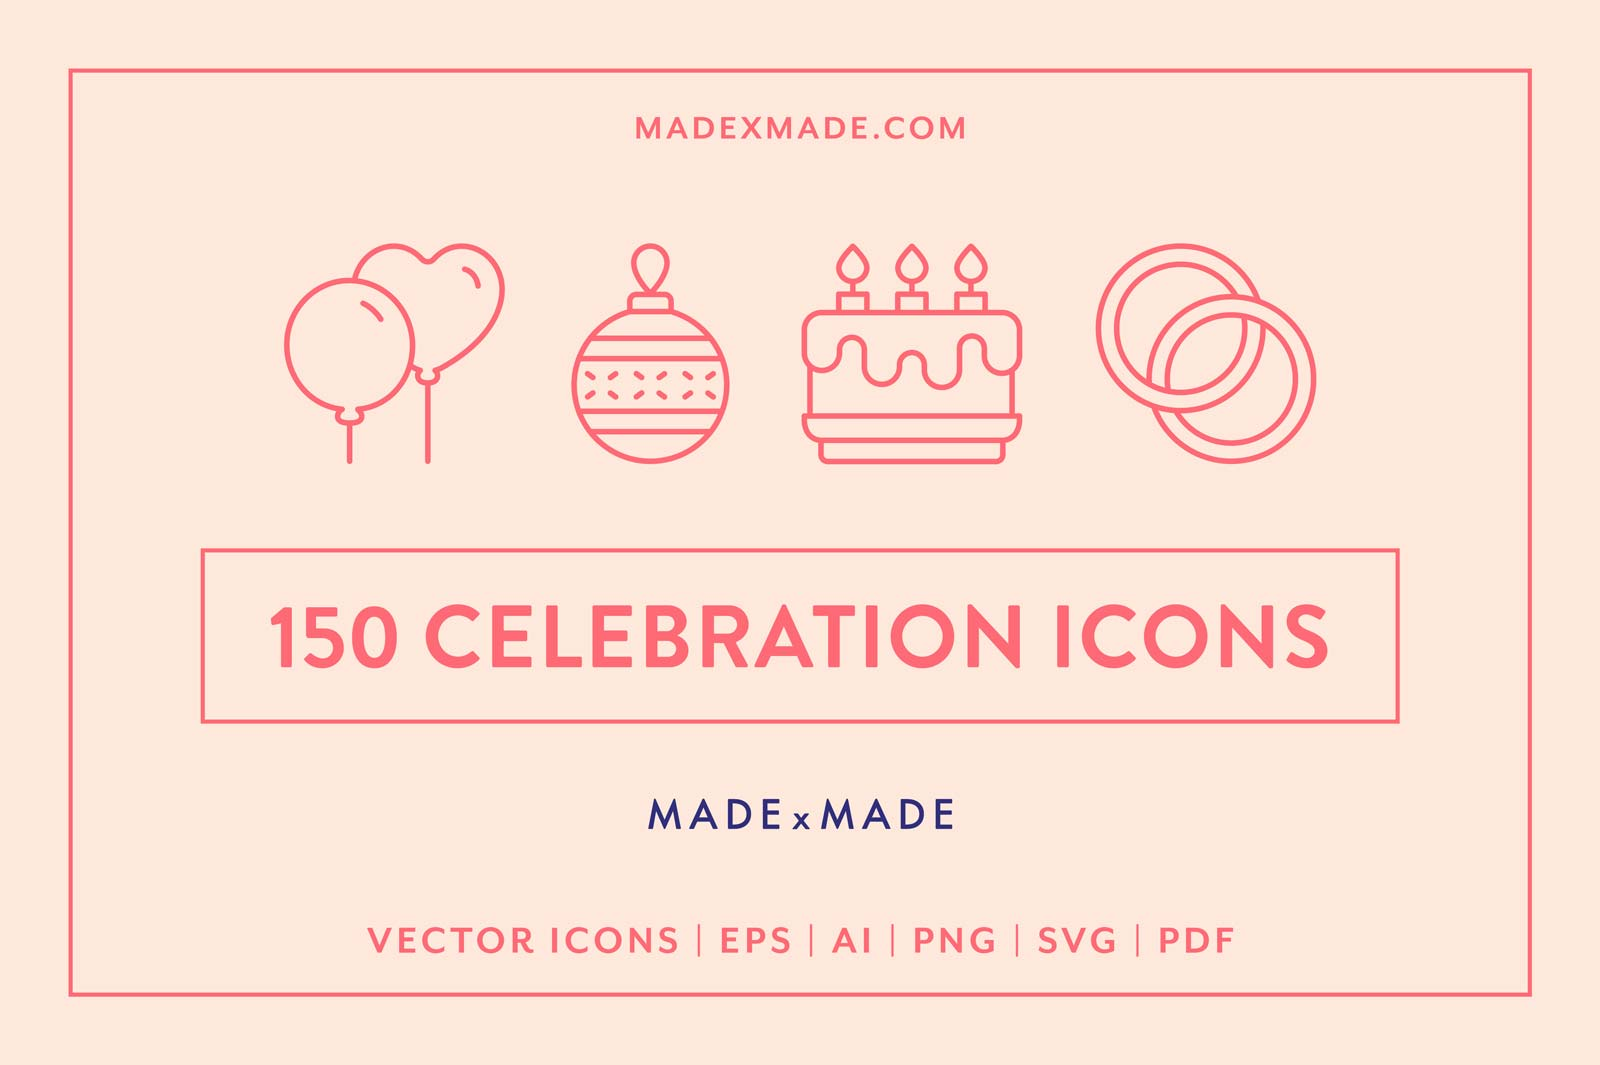 made x made icons celebration